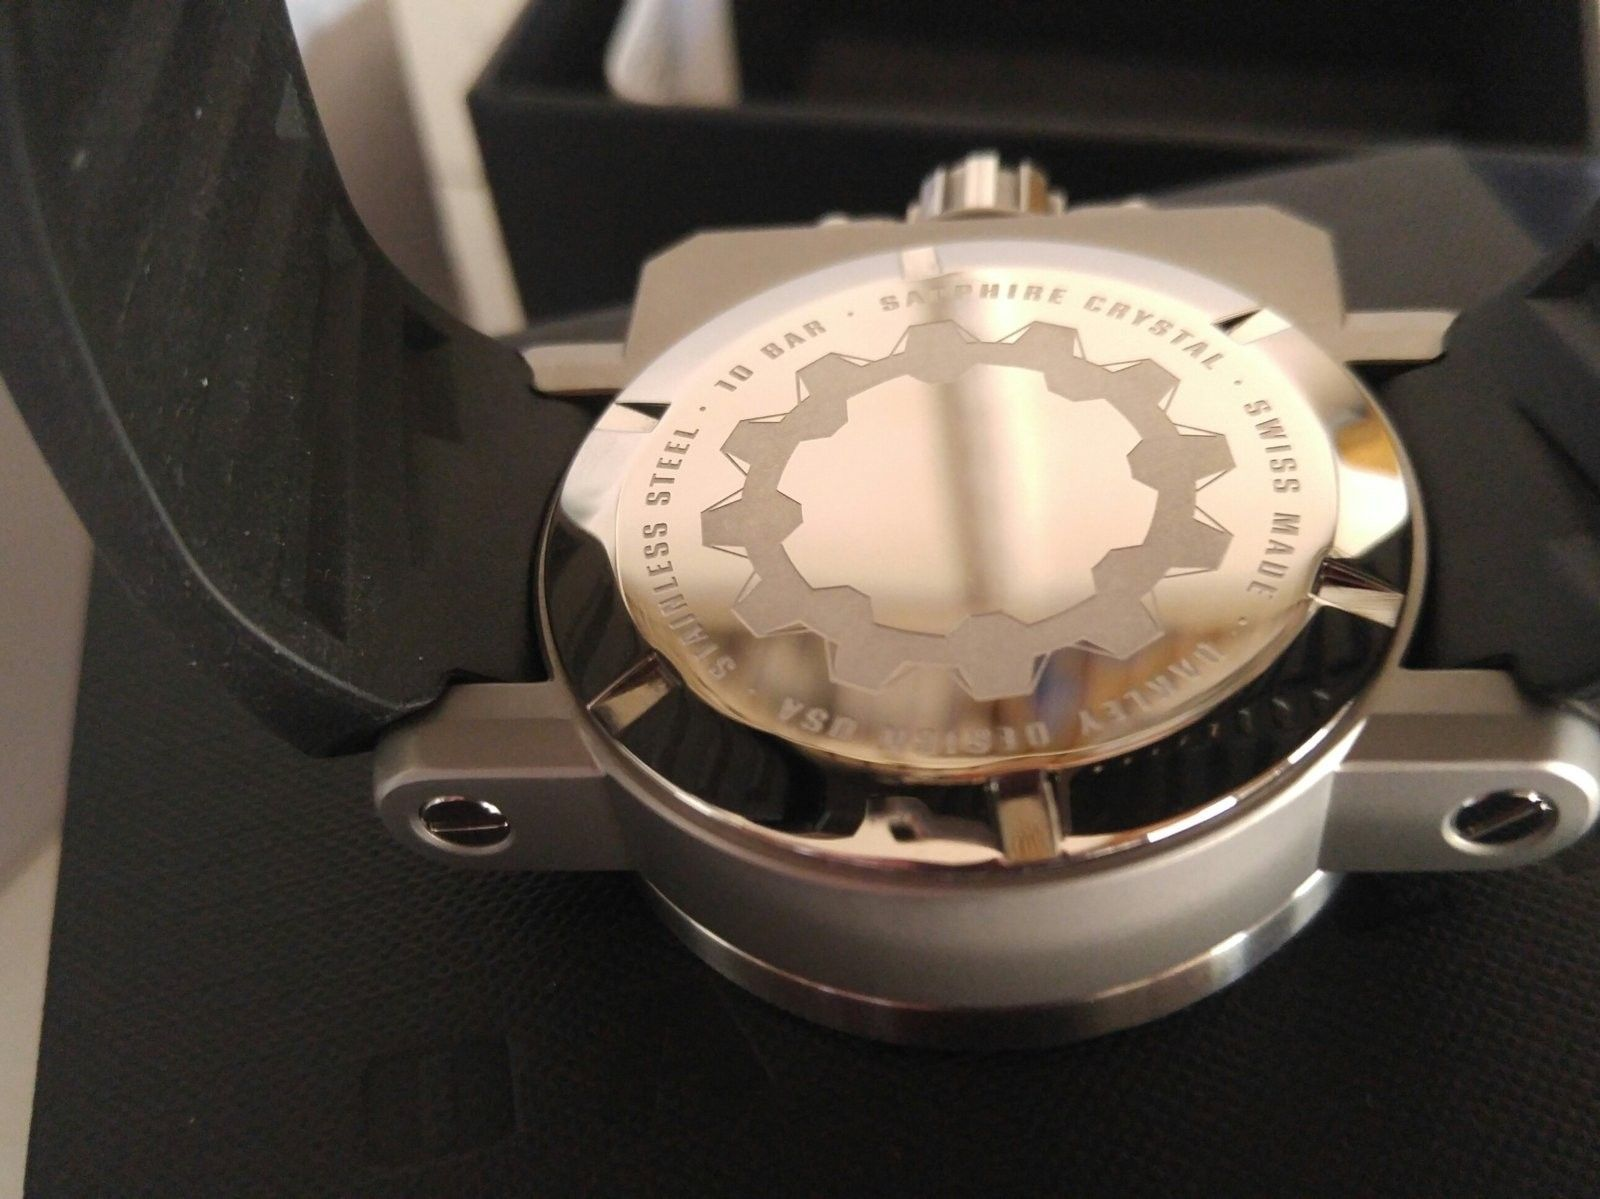 Gearbox white dial SOLD - 20160415_123325-1.jpg